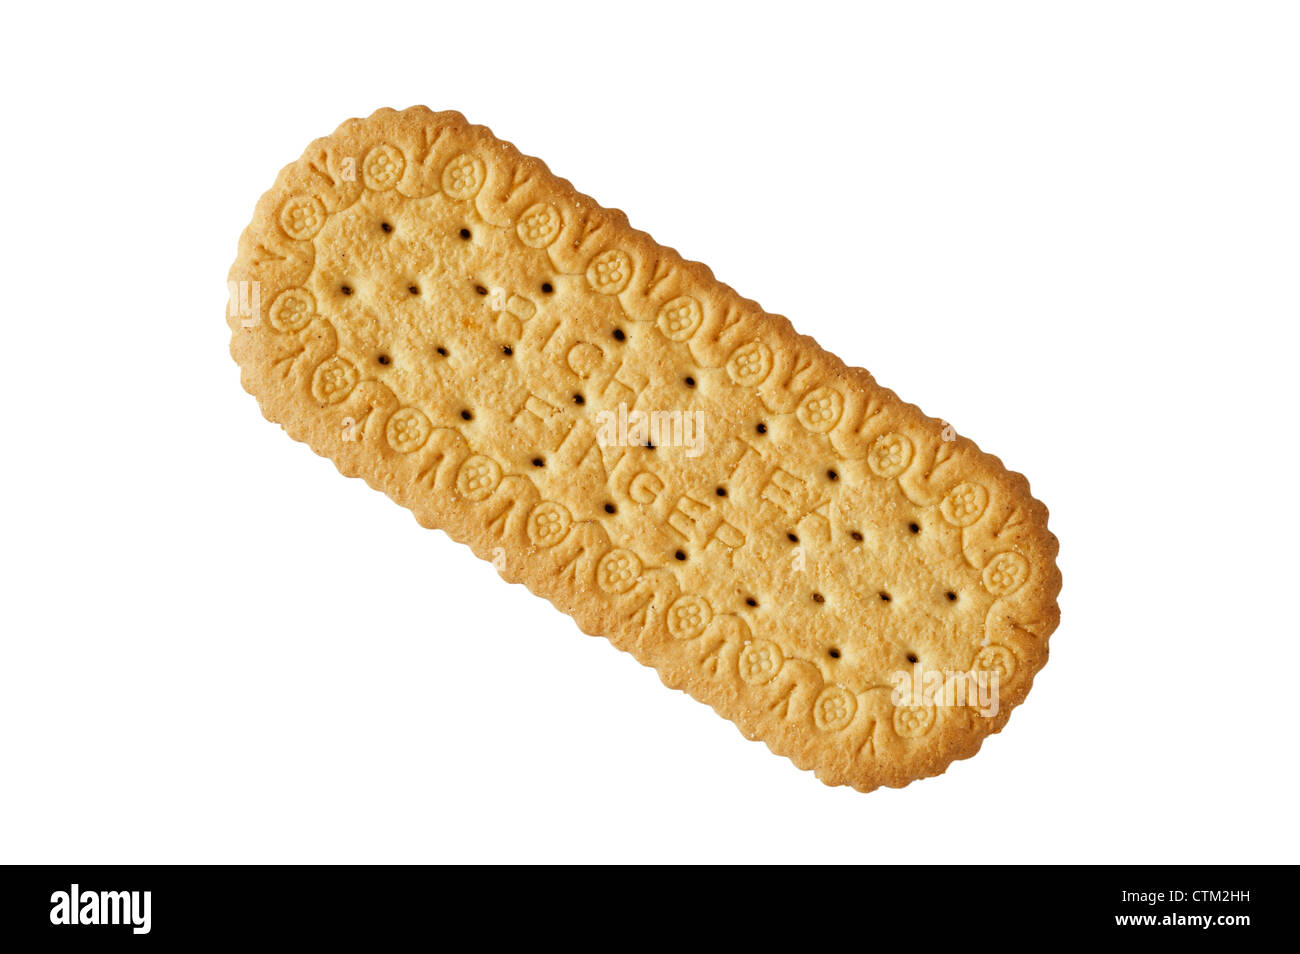 A Rich Tea Finger biscuit on a white background - Stock Image